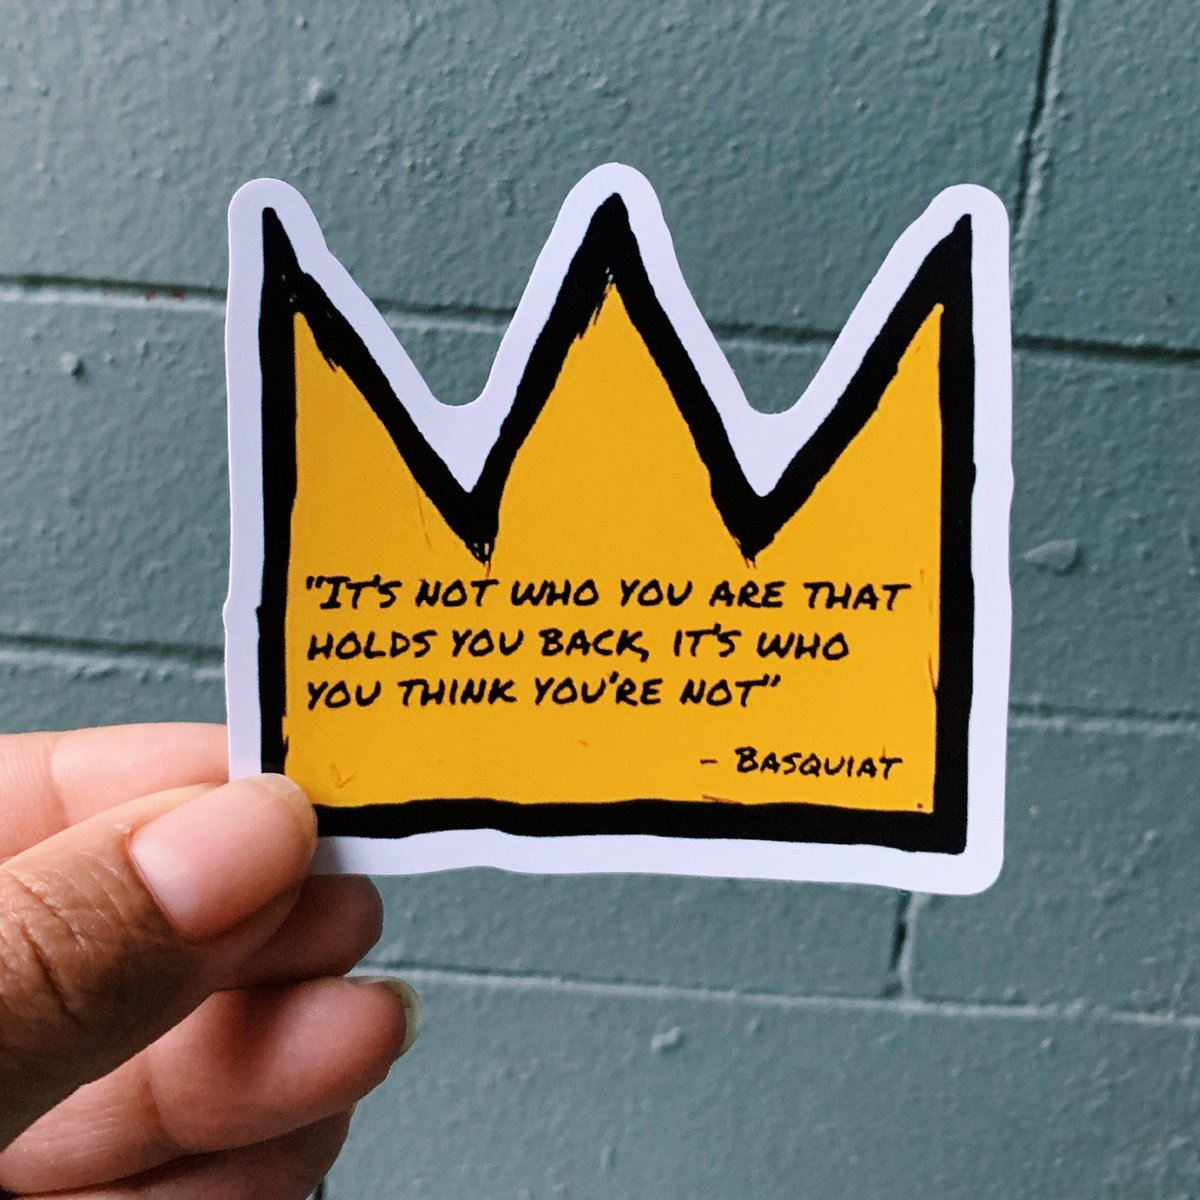 Excited to share this item from my #etsy shop: Basquiat Quote Sticker https://etsy.me/2ZLSQnXpic.twitter.com/THSNuufSFn